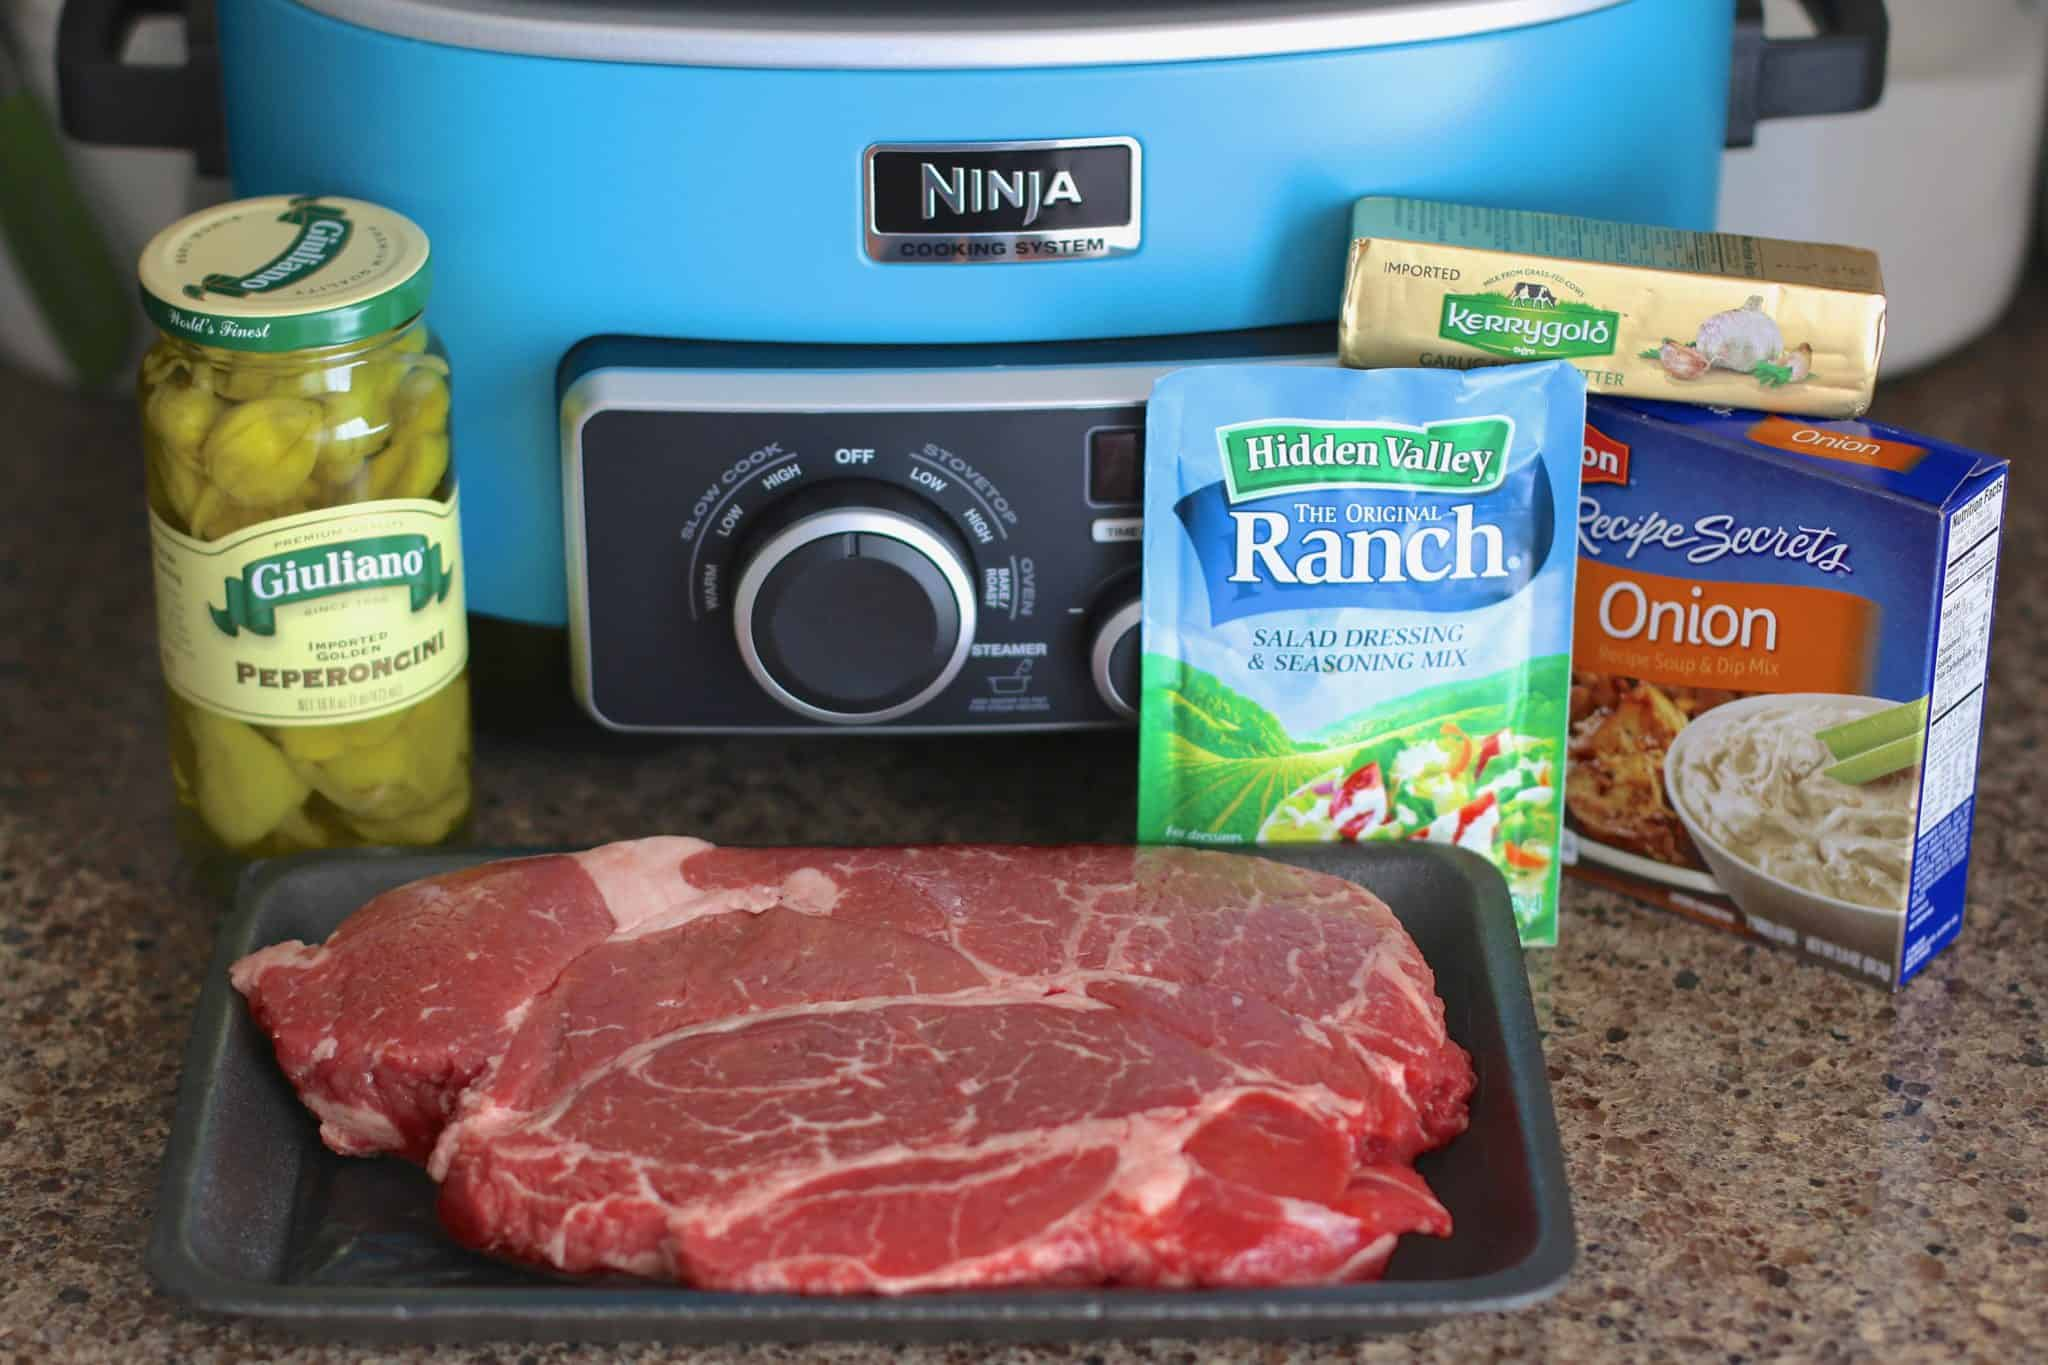 ingredients needed to make Mississippi Pot Roast: chuck roast, olive oil. salt and pepper, ranch dressing mix, dry onion soup mix, salted butter, pepperoncini peppers